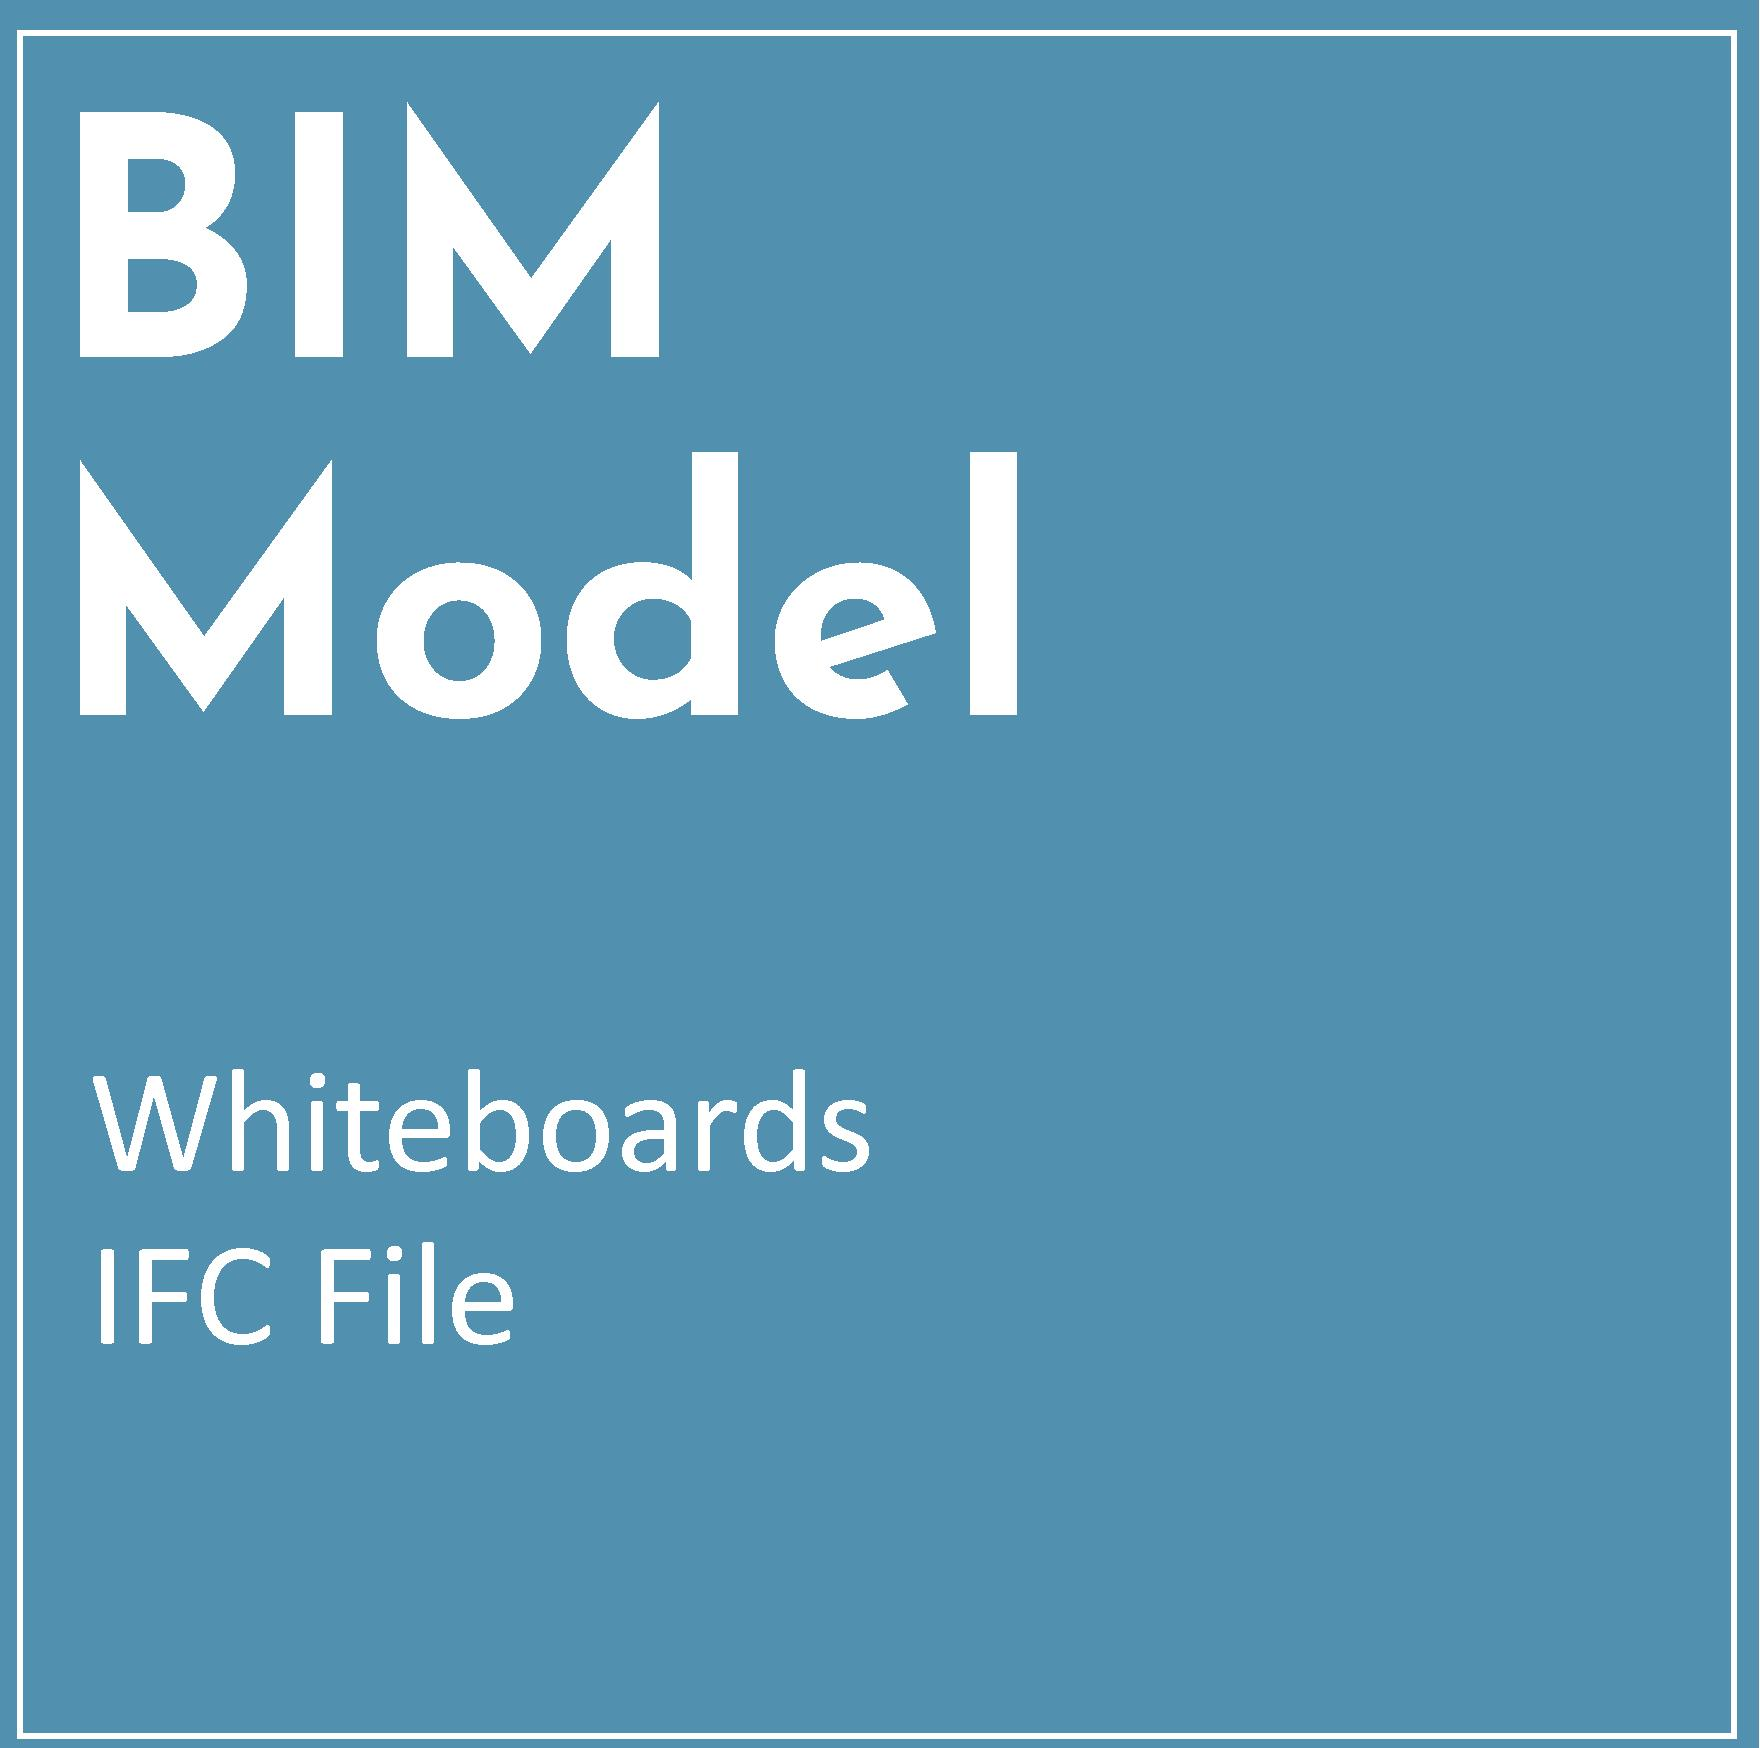 IFC BIM Model – Whiteboards